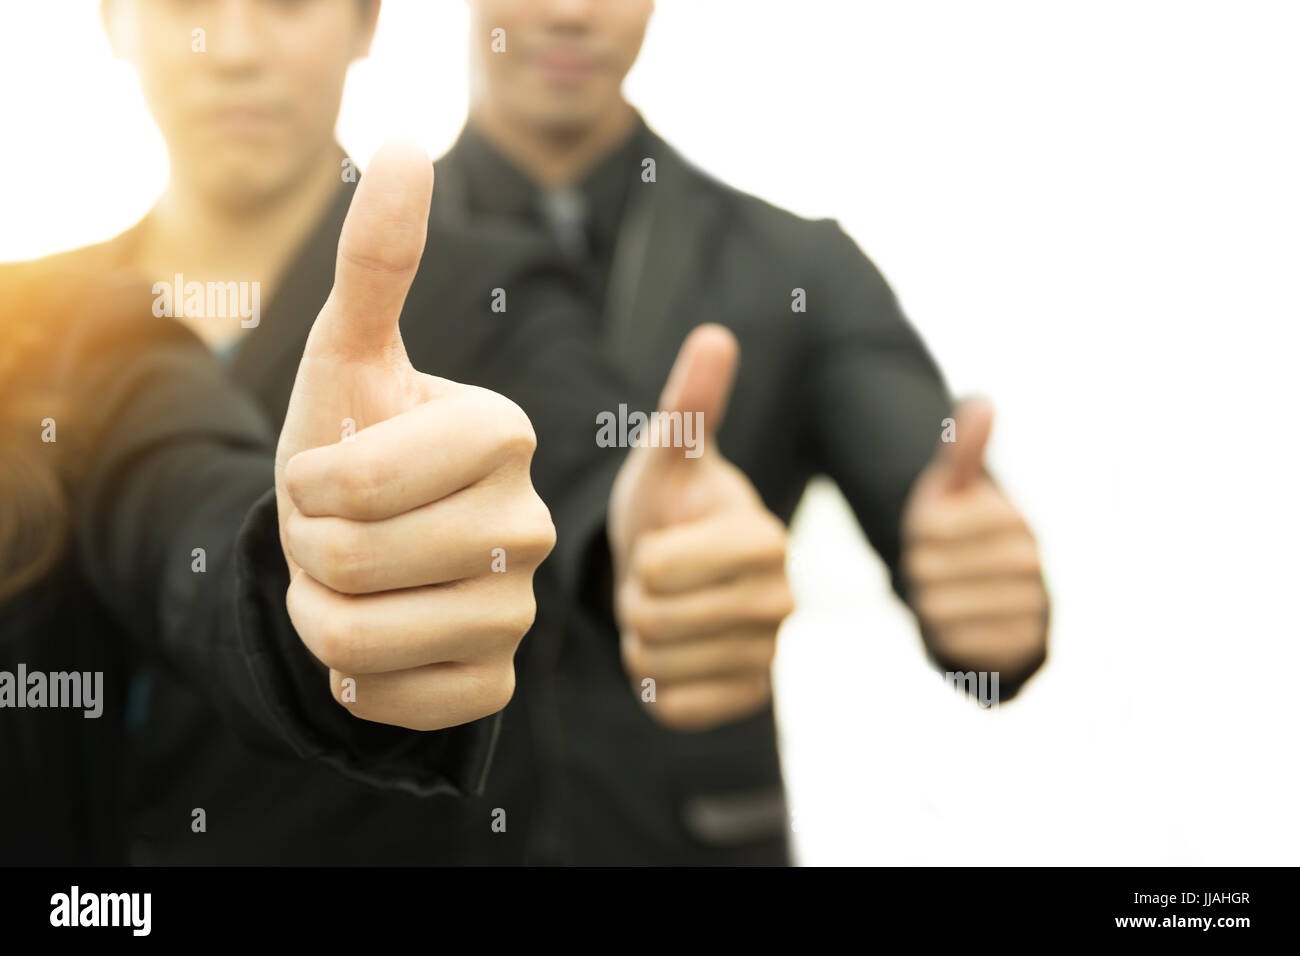 Business success concept Selective focus on thumbs up of business man on white background. Warm tone with flare - Stock Image